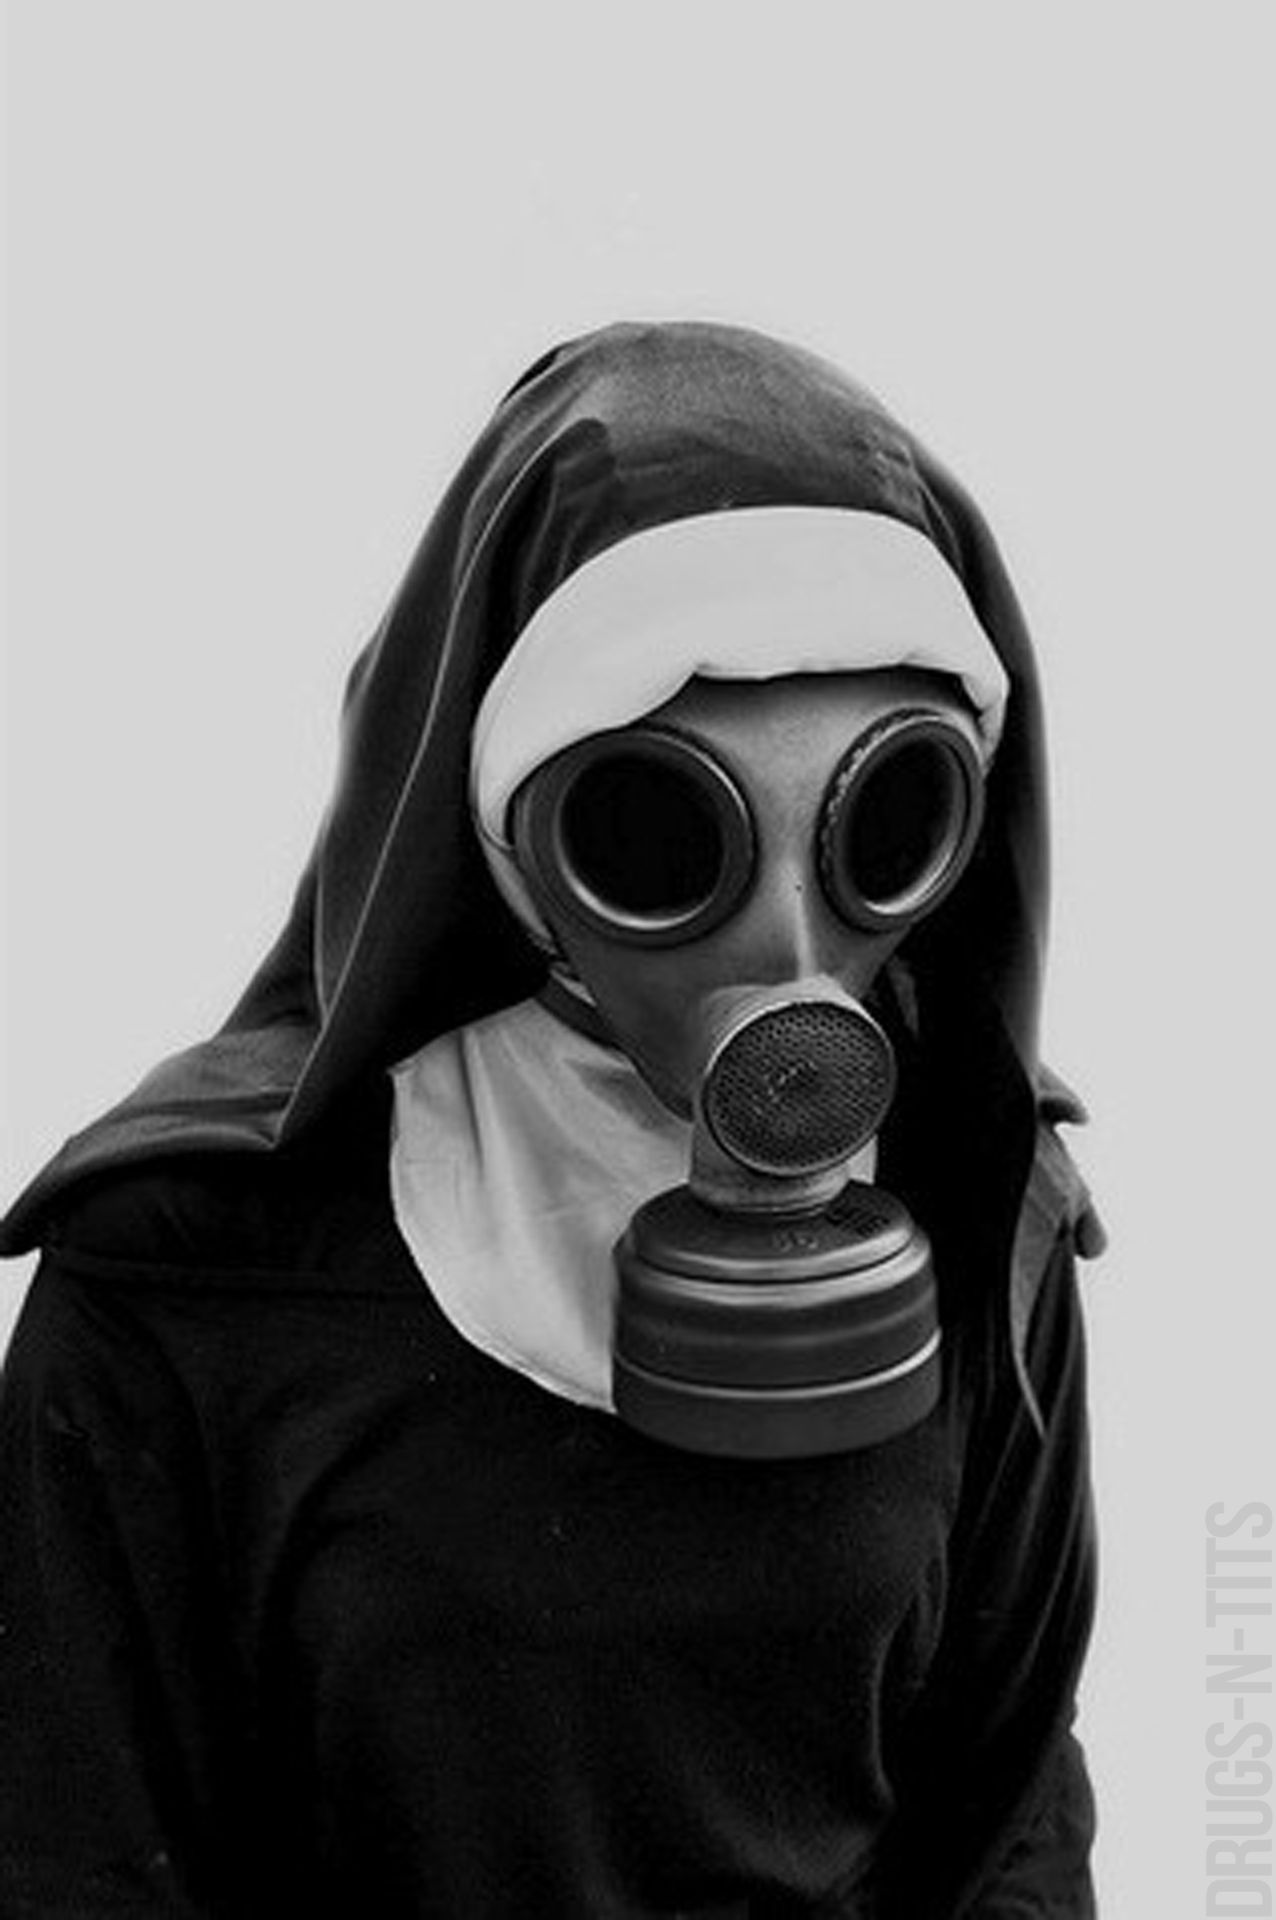 Bunny gas mask | Apocalyptic | Pinterest | Masking and Bunny